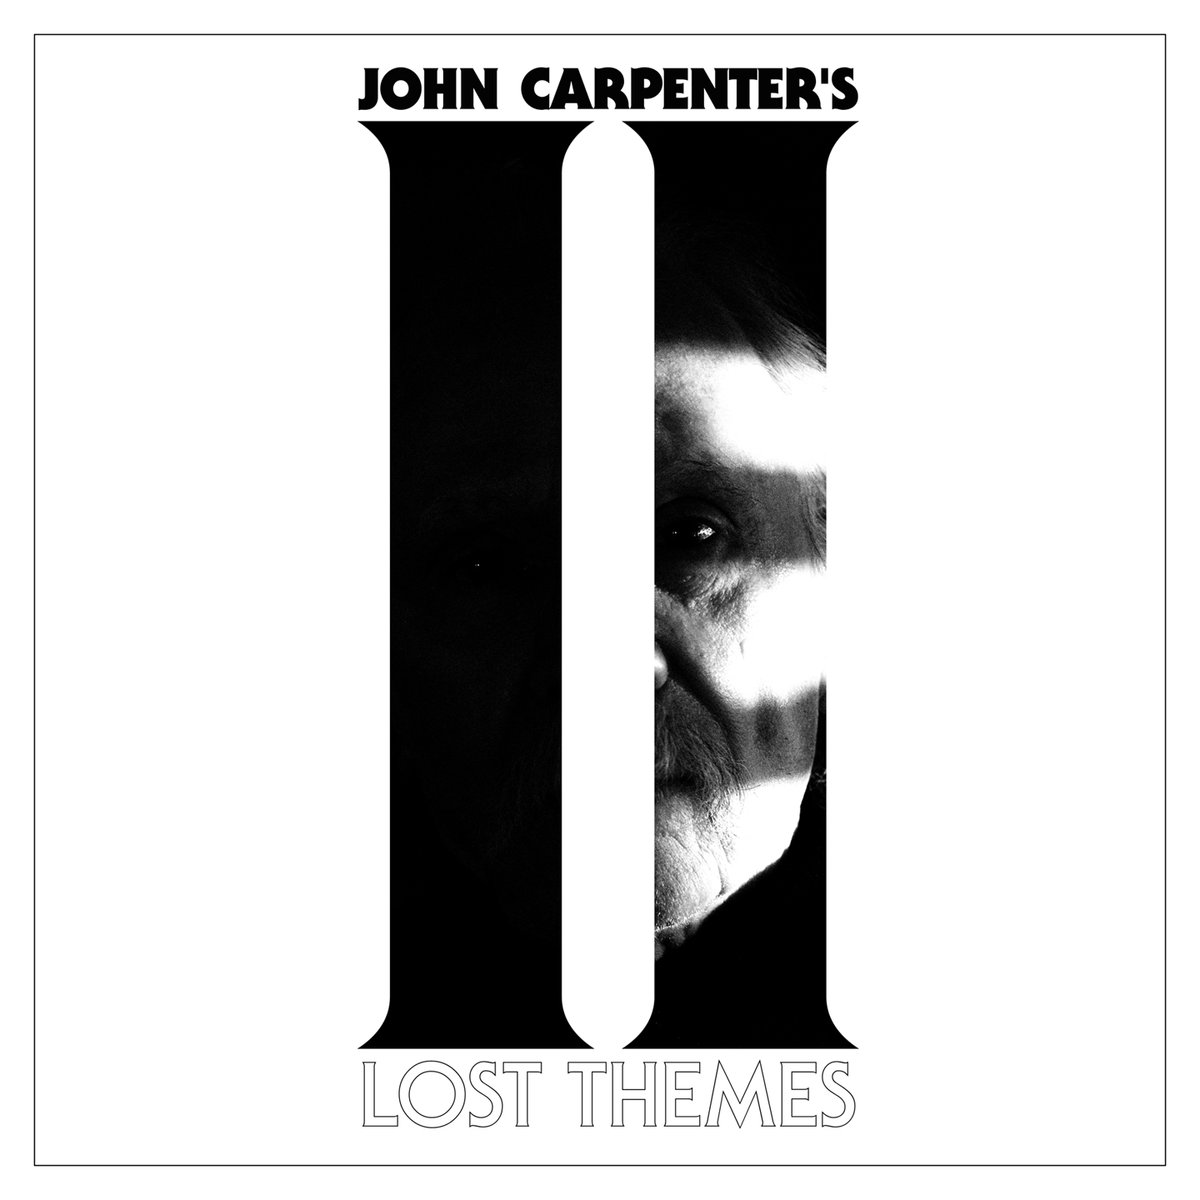 John+Carpenter+%E2%80%93+Lost+Themes+II - Top Ten Retrowave Albums of 2016